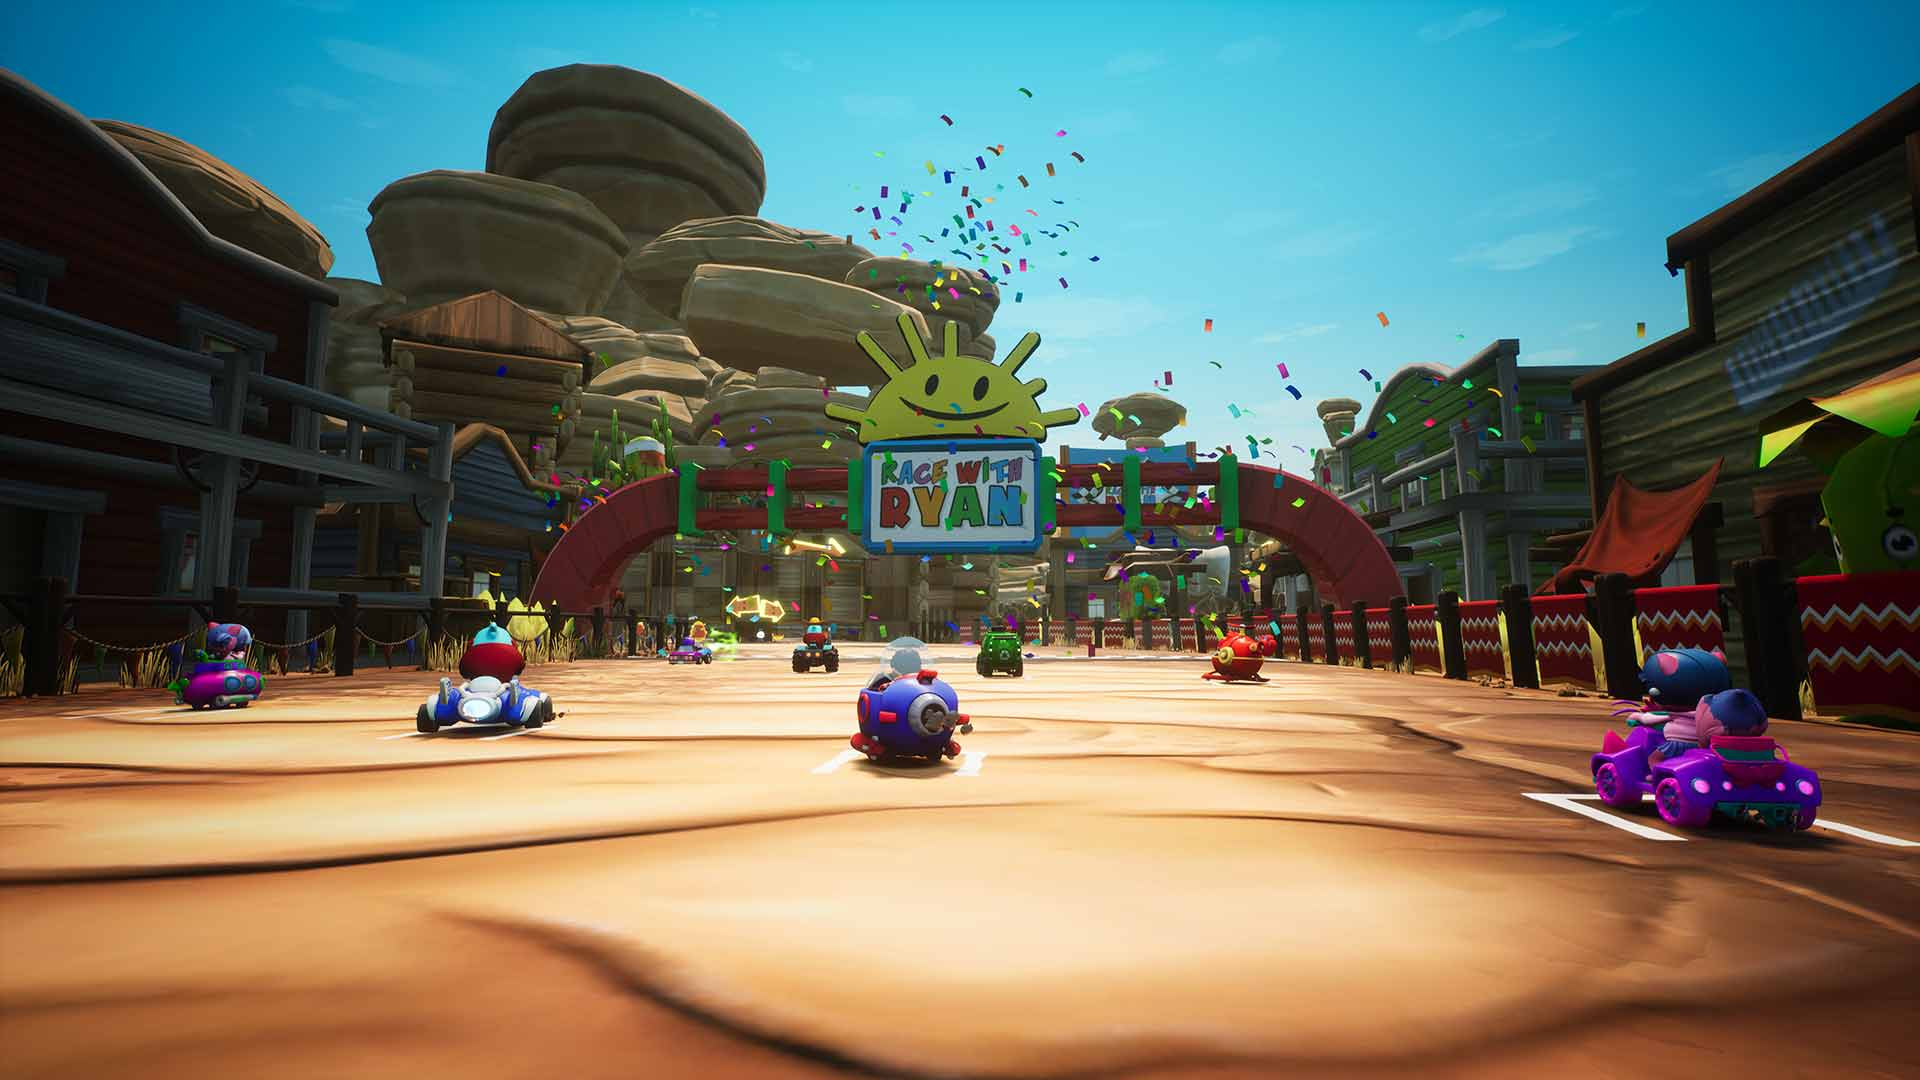 Race With Ryan - Screenshot 2